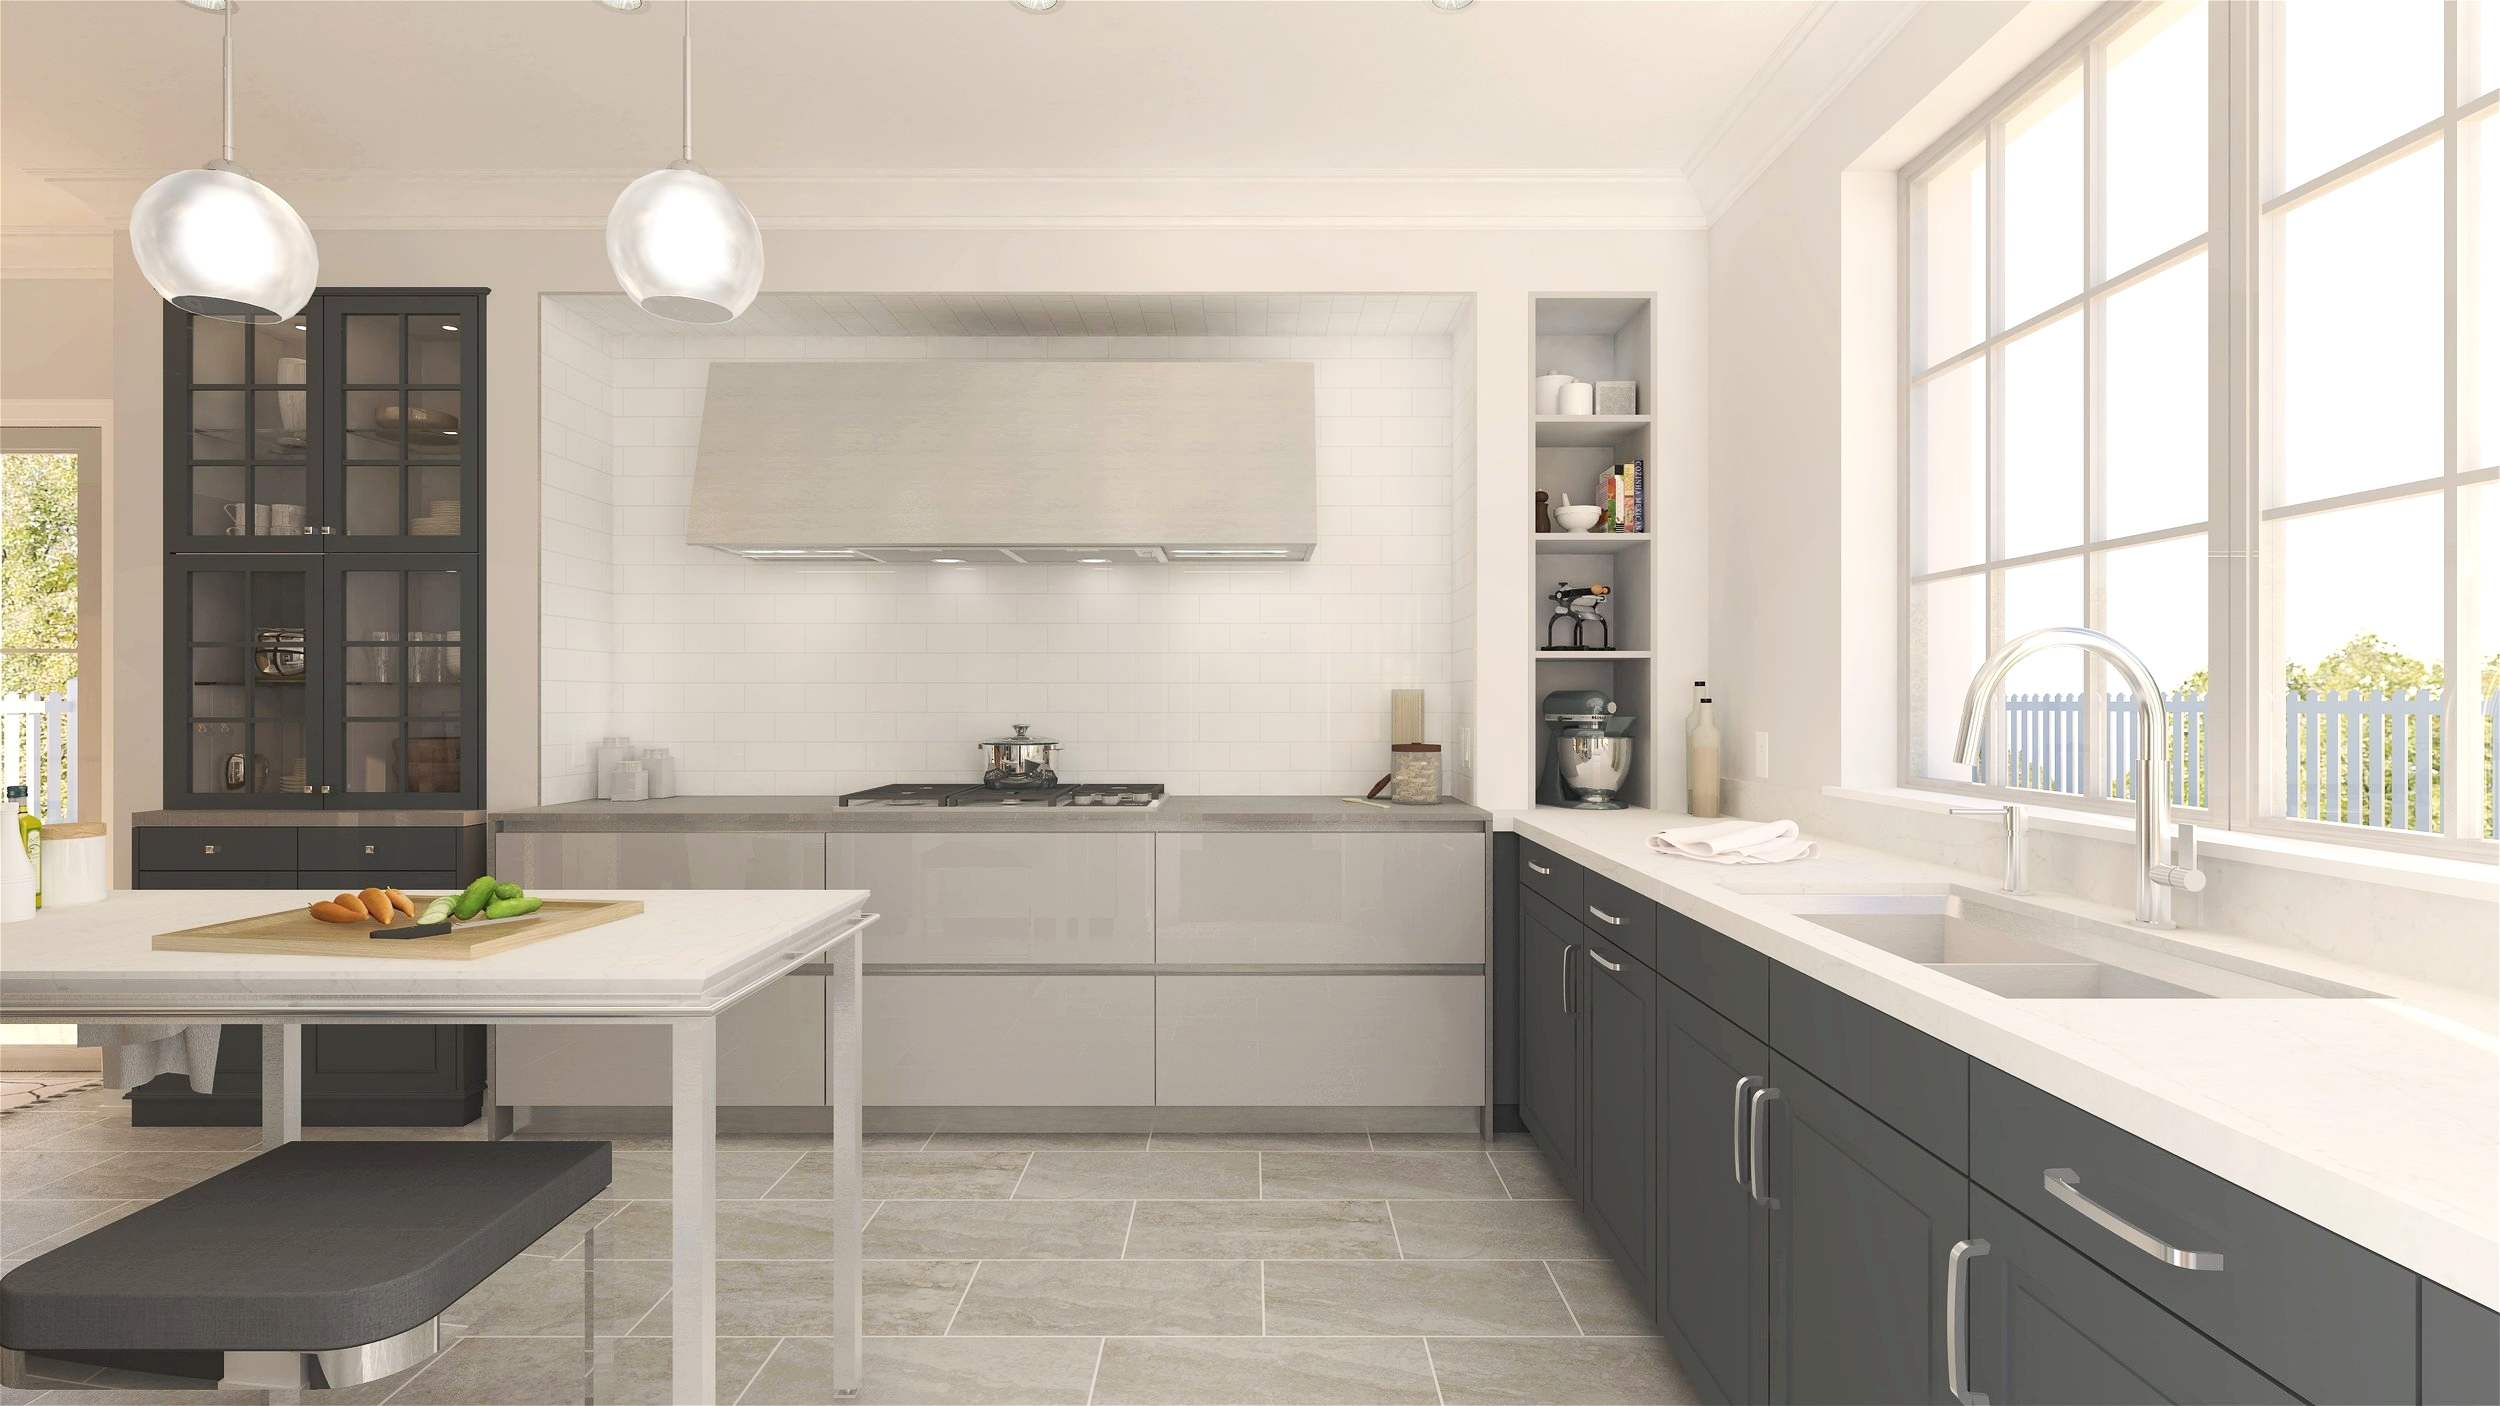 deSousaDESIGN_Kitchen_Eclectic_Chef_V1c_3840x2160.jpg